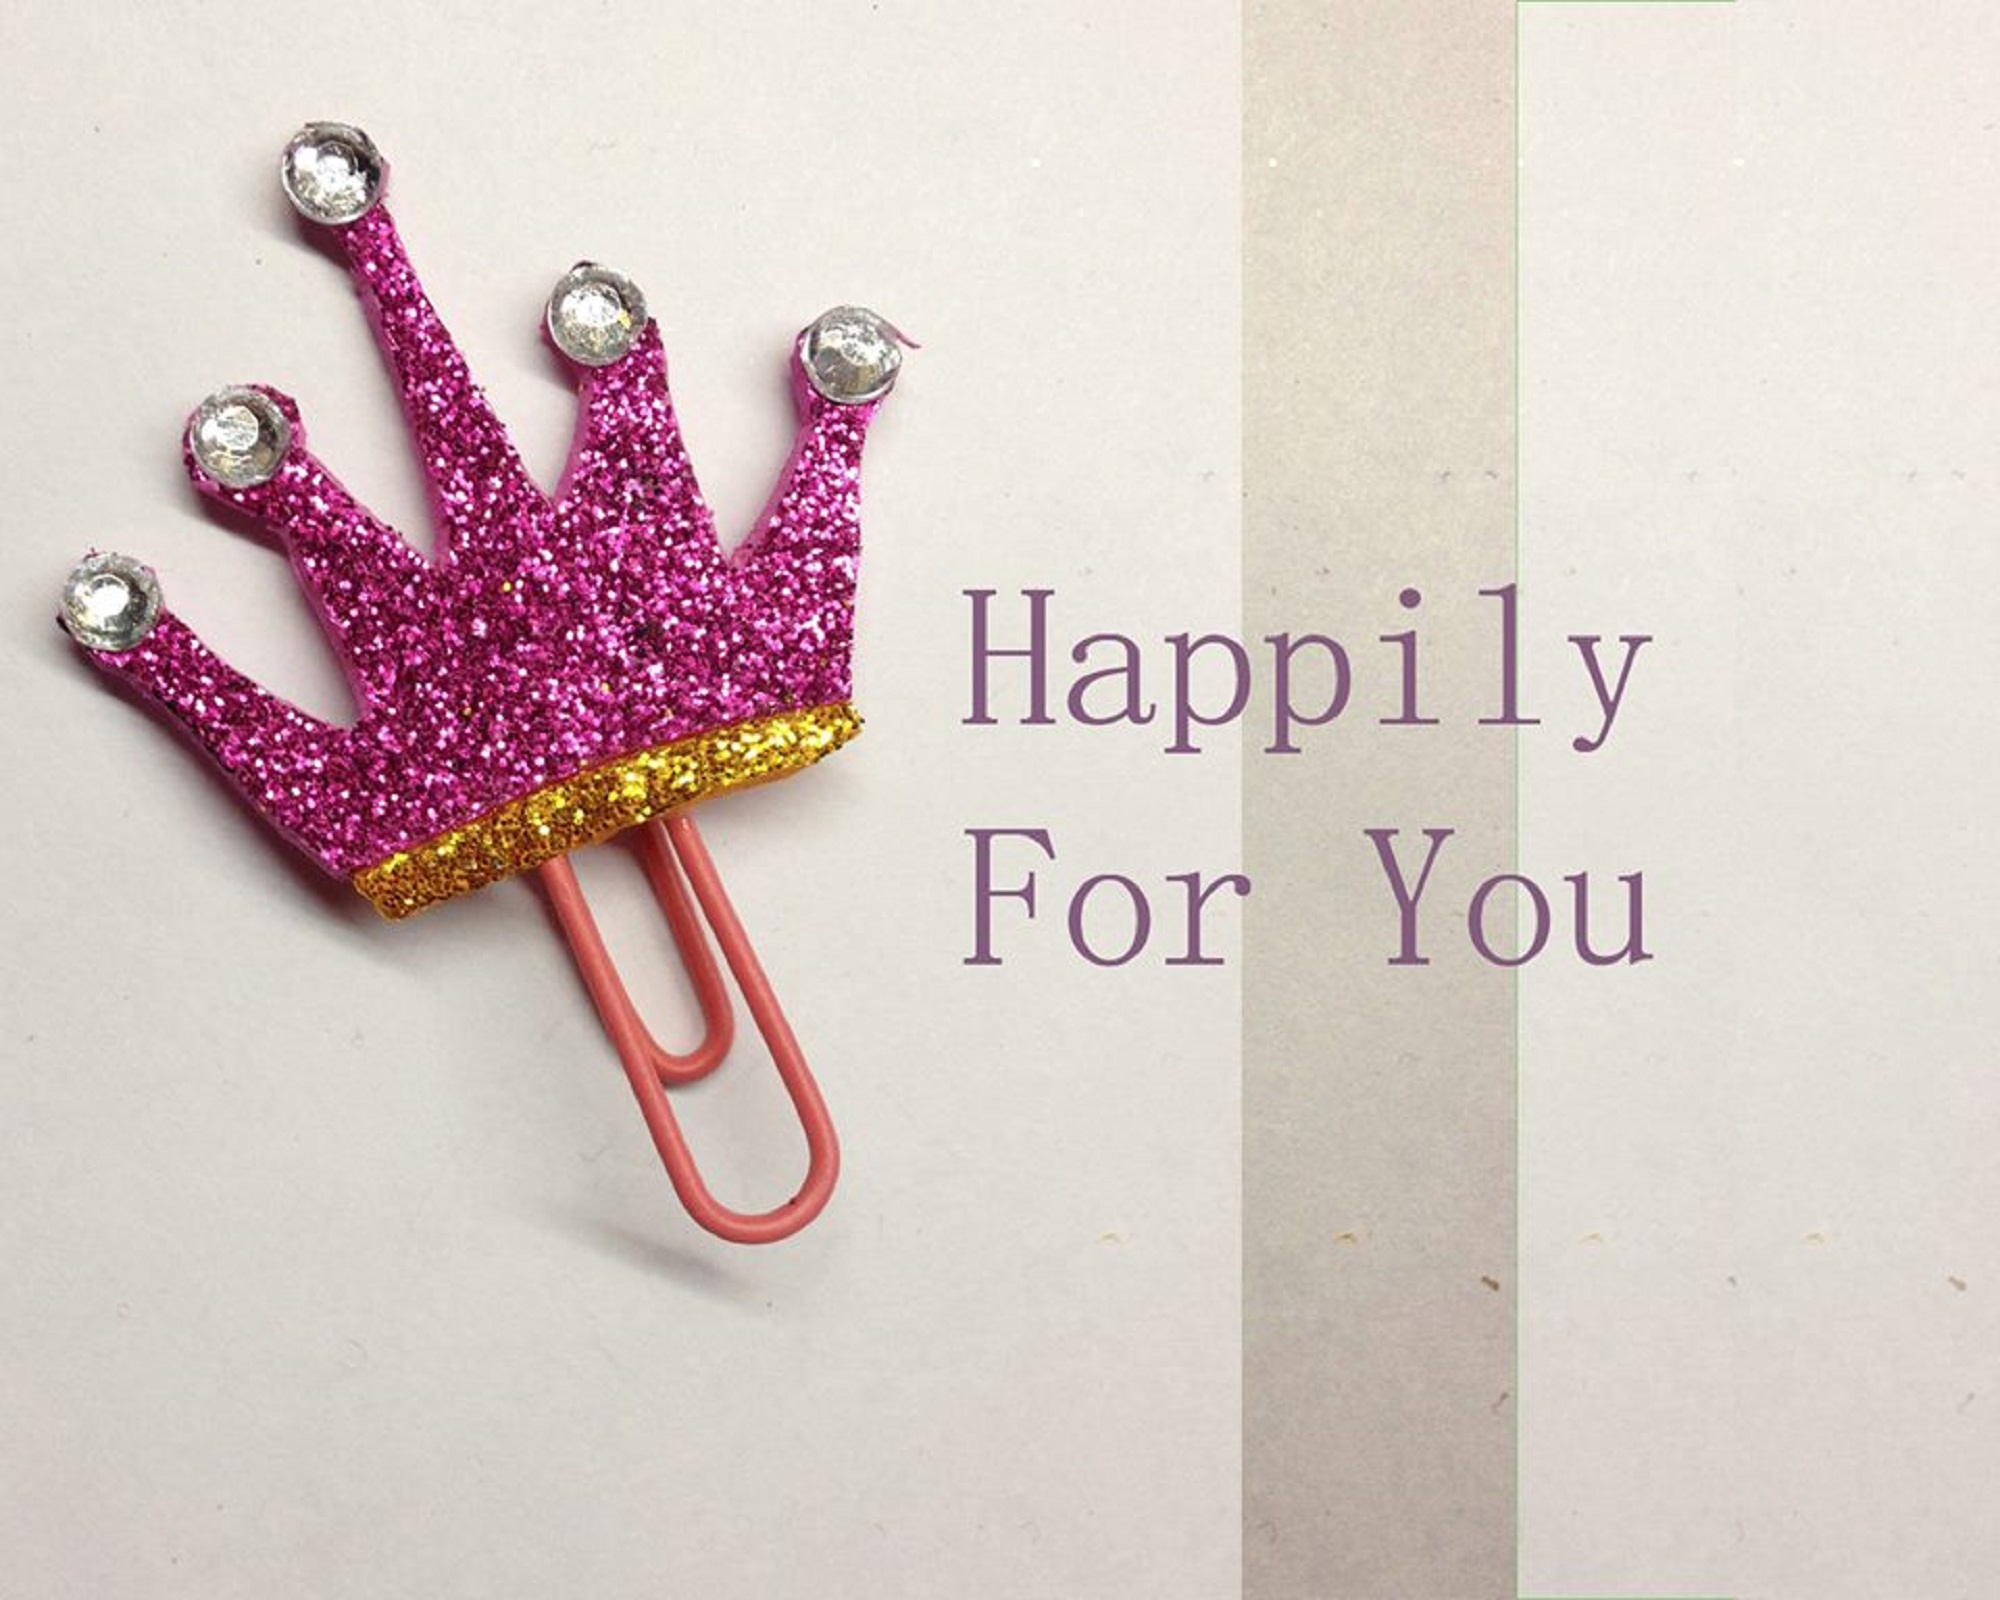 Happily For You